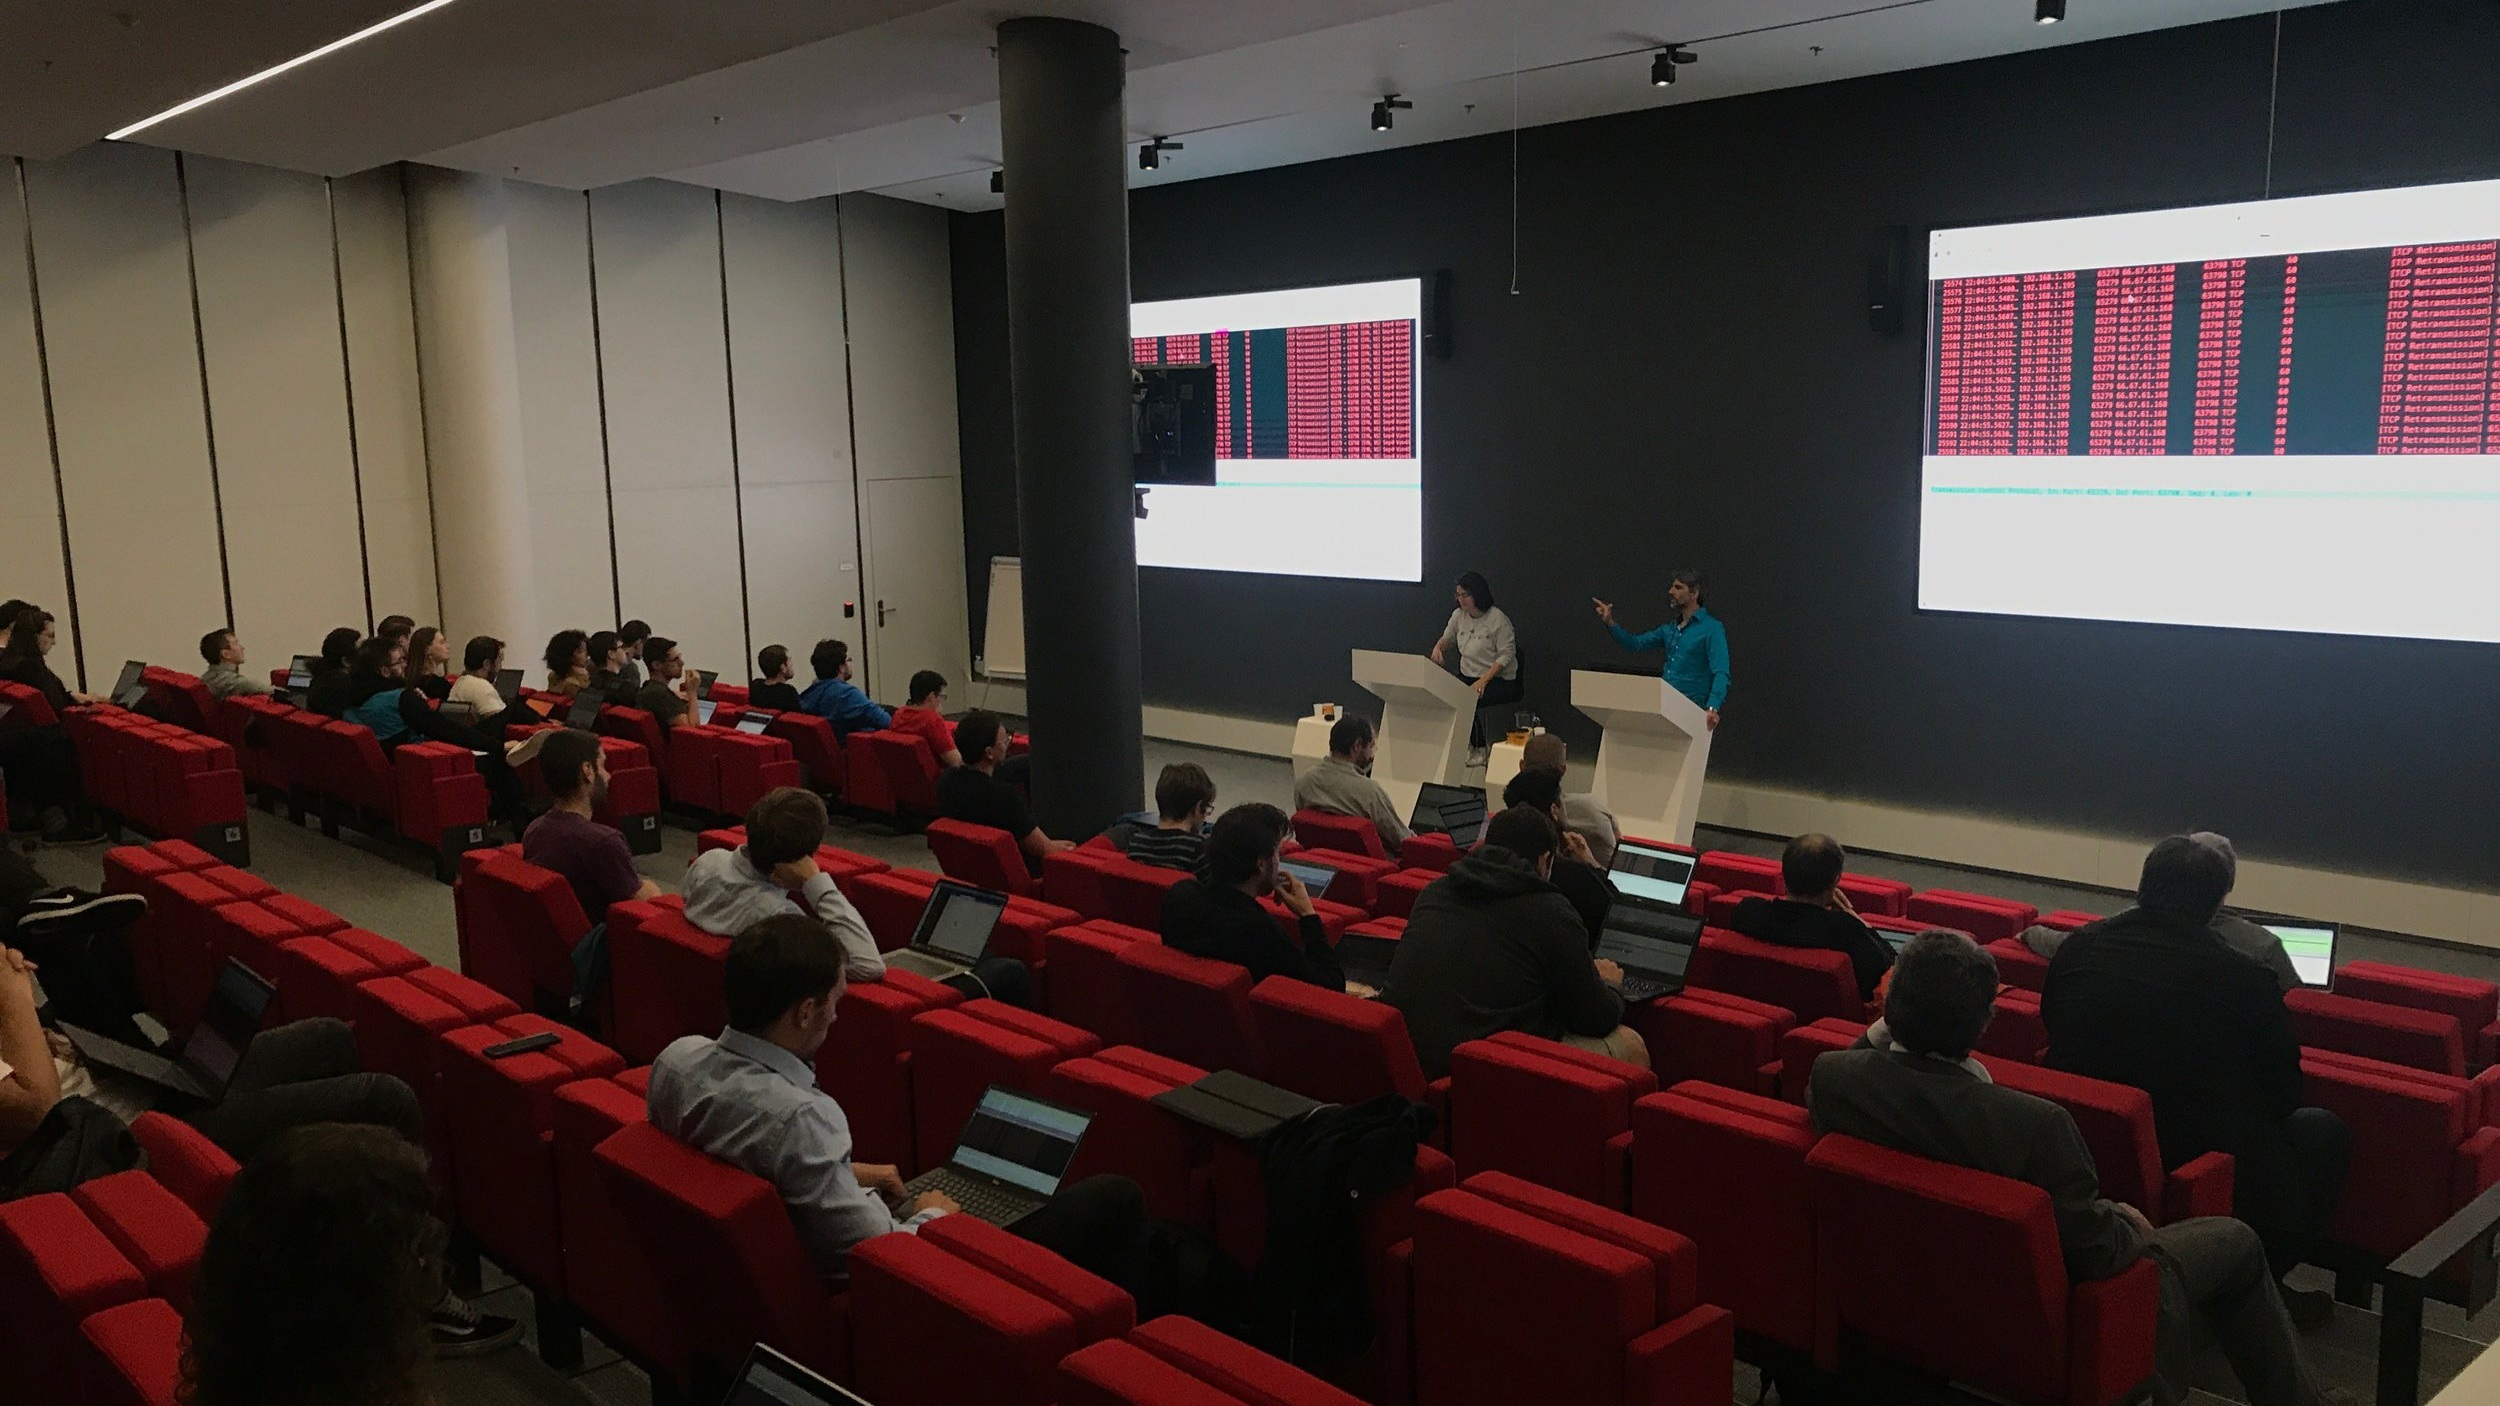 Sebastian Garcia  and  Veronica Valeros  giving the workshop 'Getting Your Hands Dirty: IoT Botnet Analysis' at OWASP Czech Chapter Meeting, May 2019.